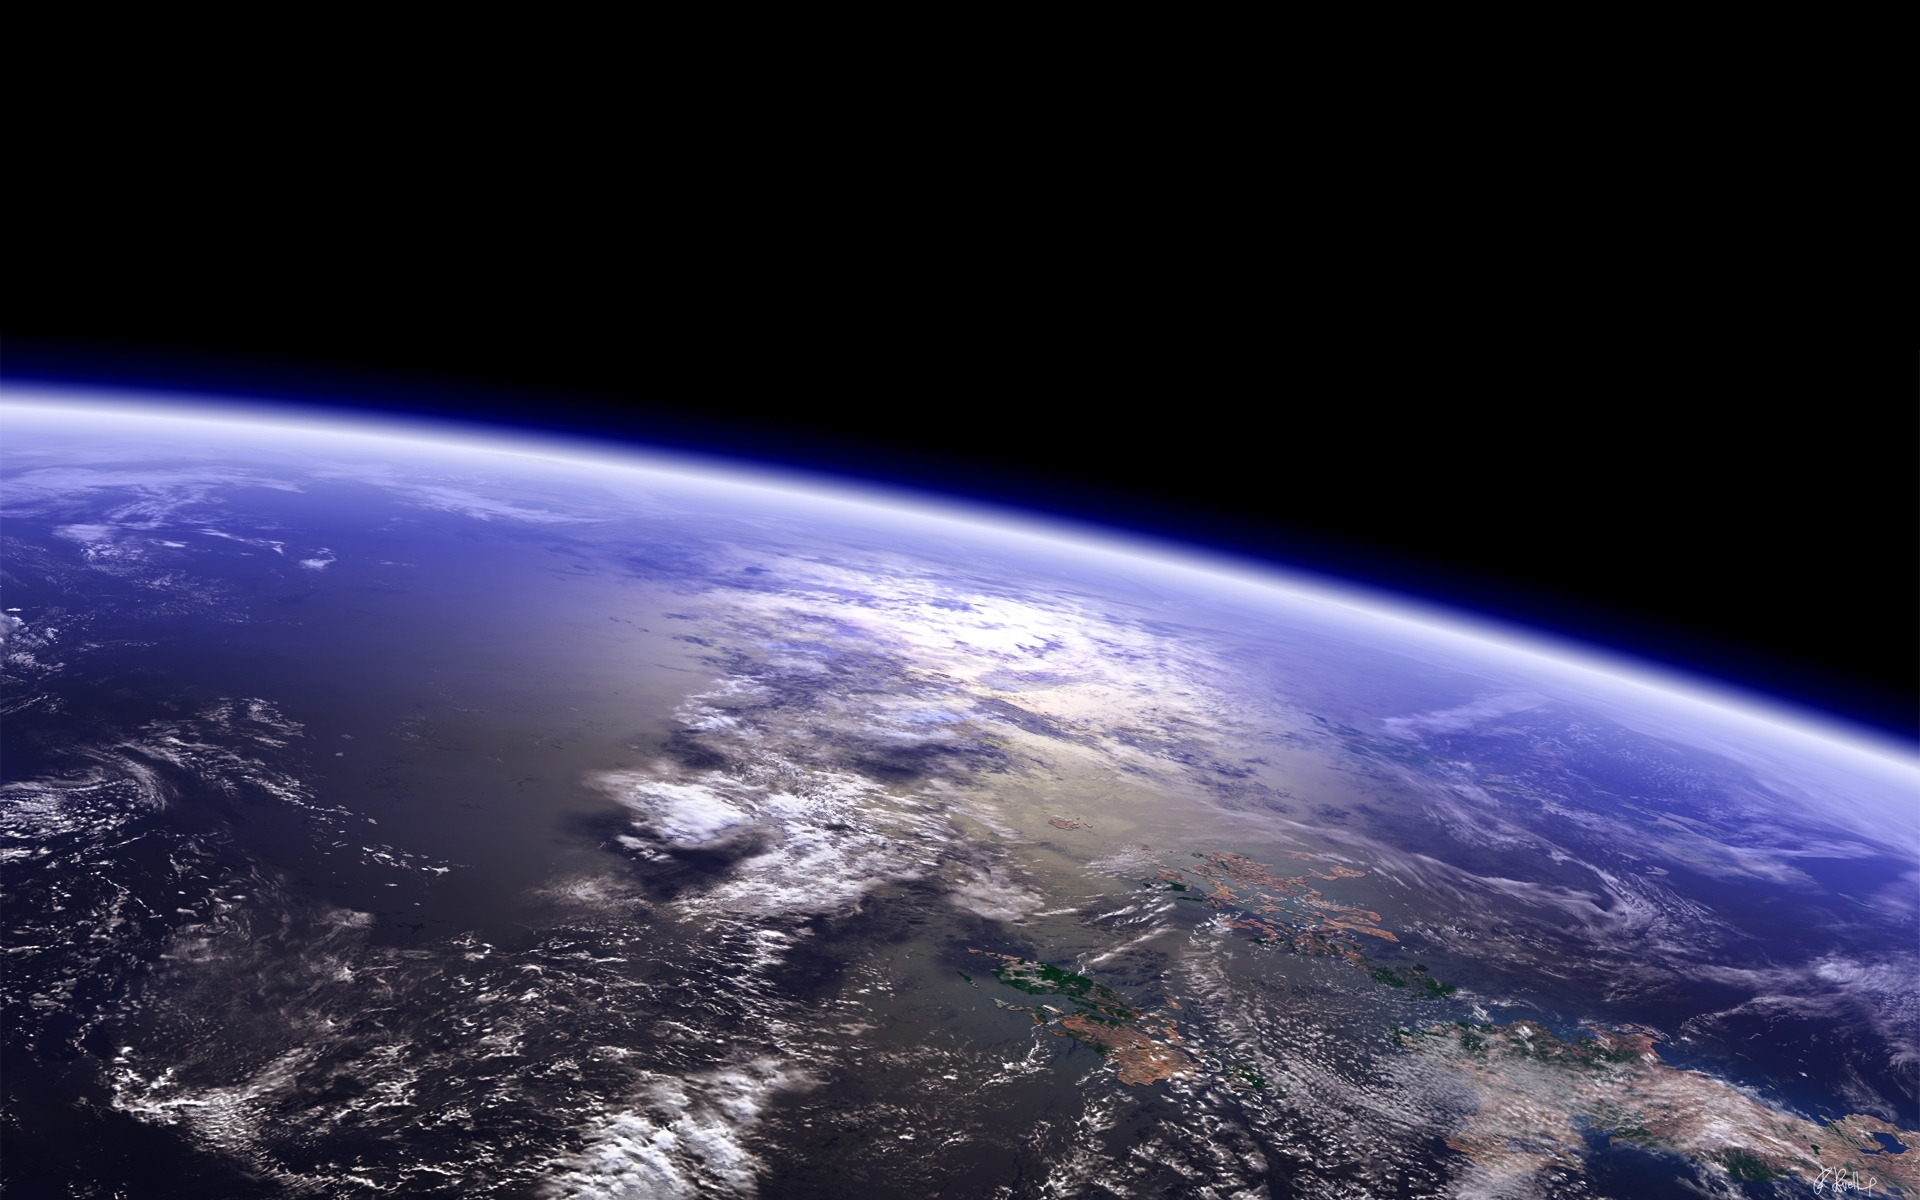 earth from space images - HD 1920×1200